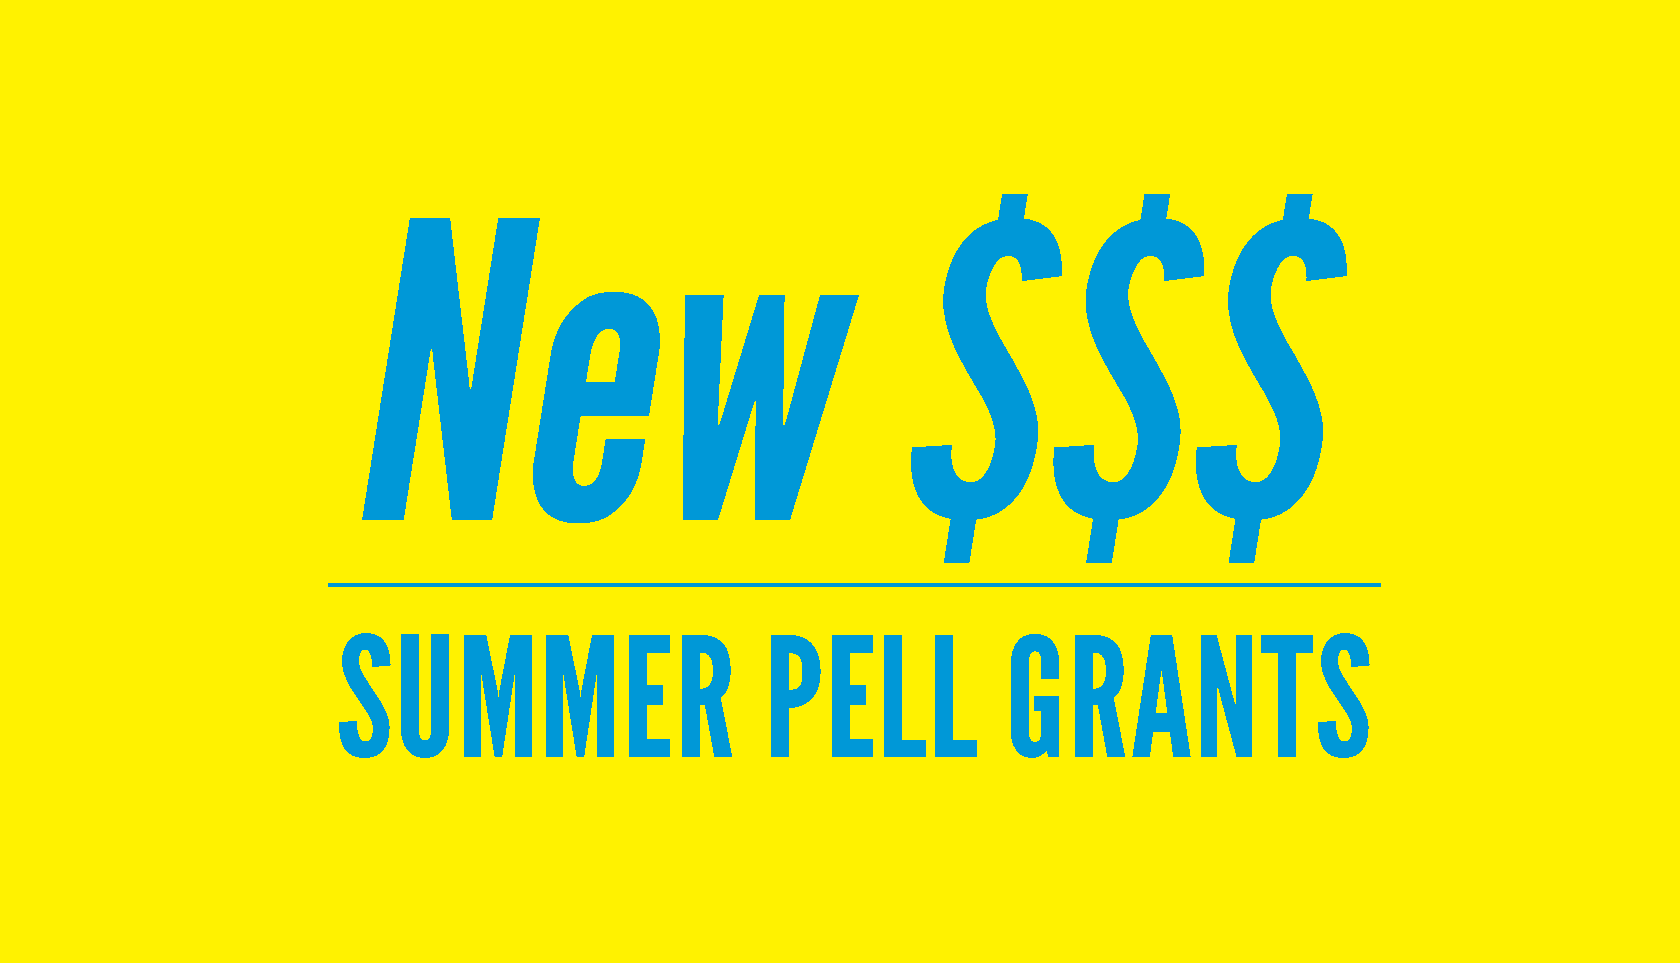 summer pell grants.png